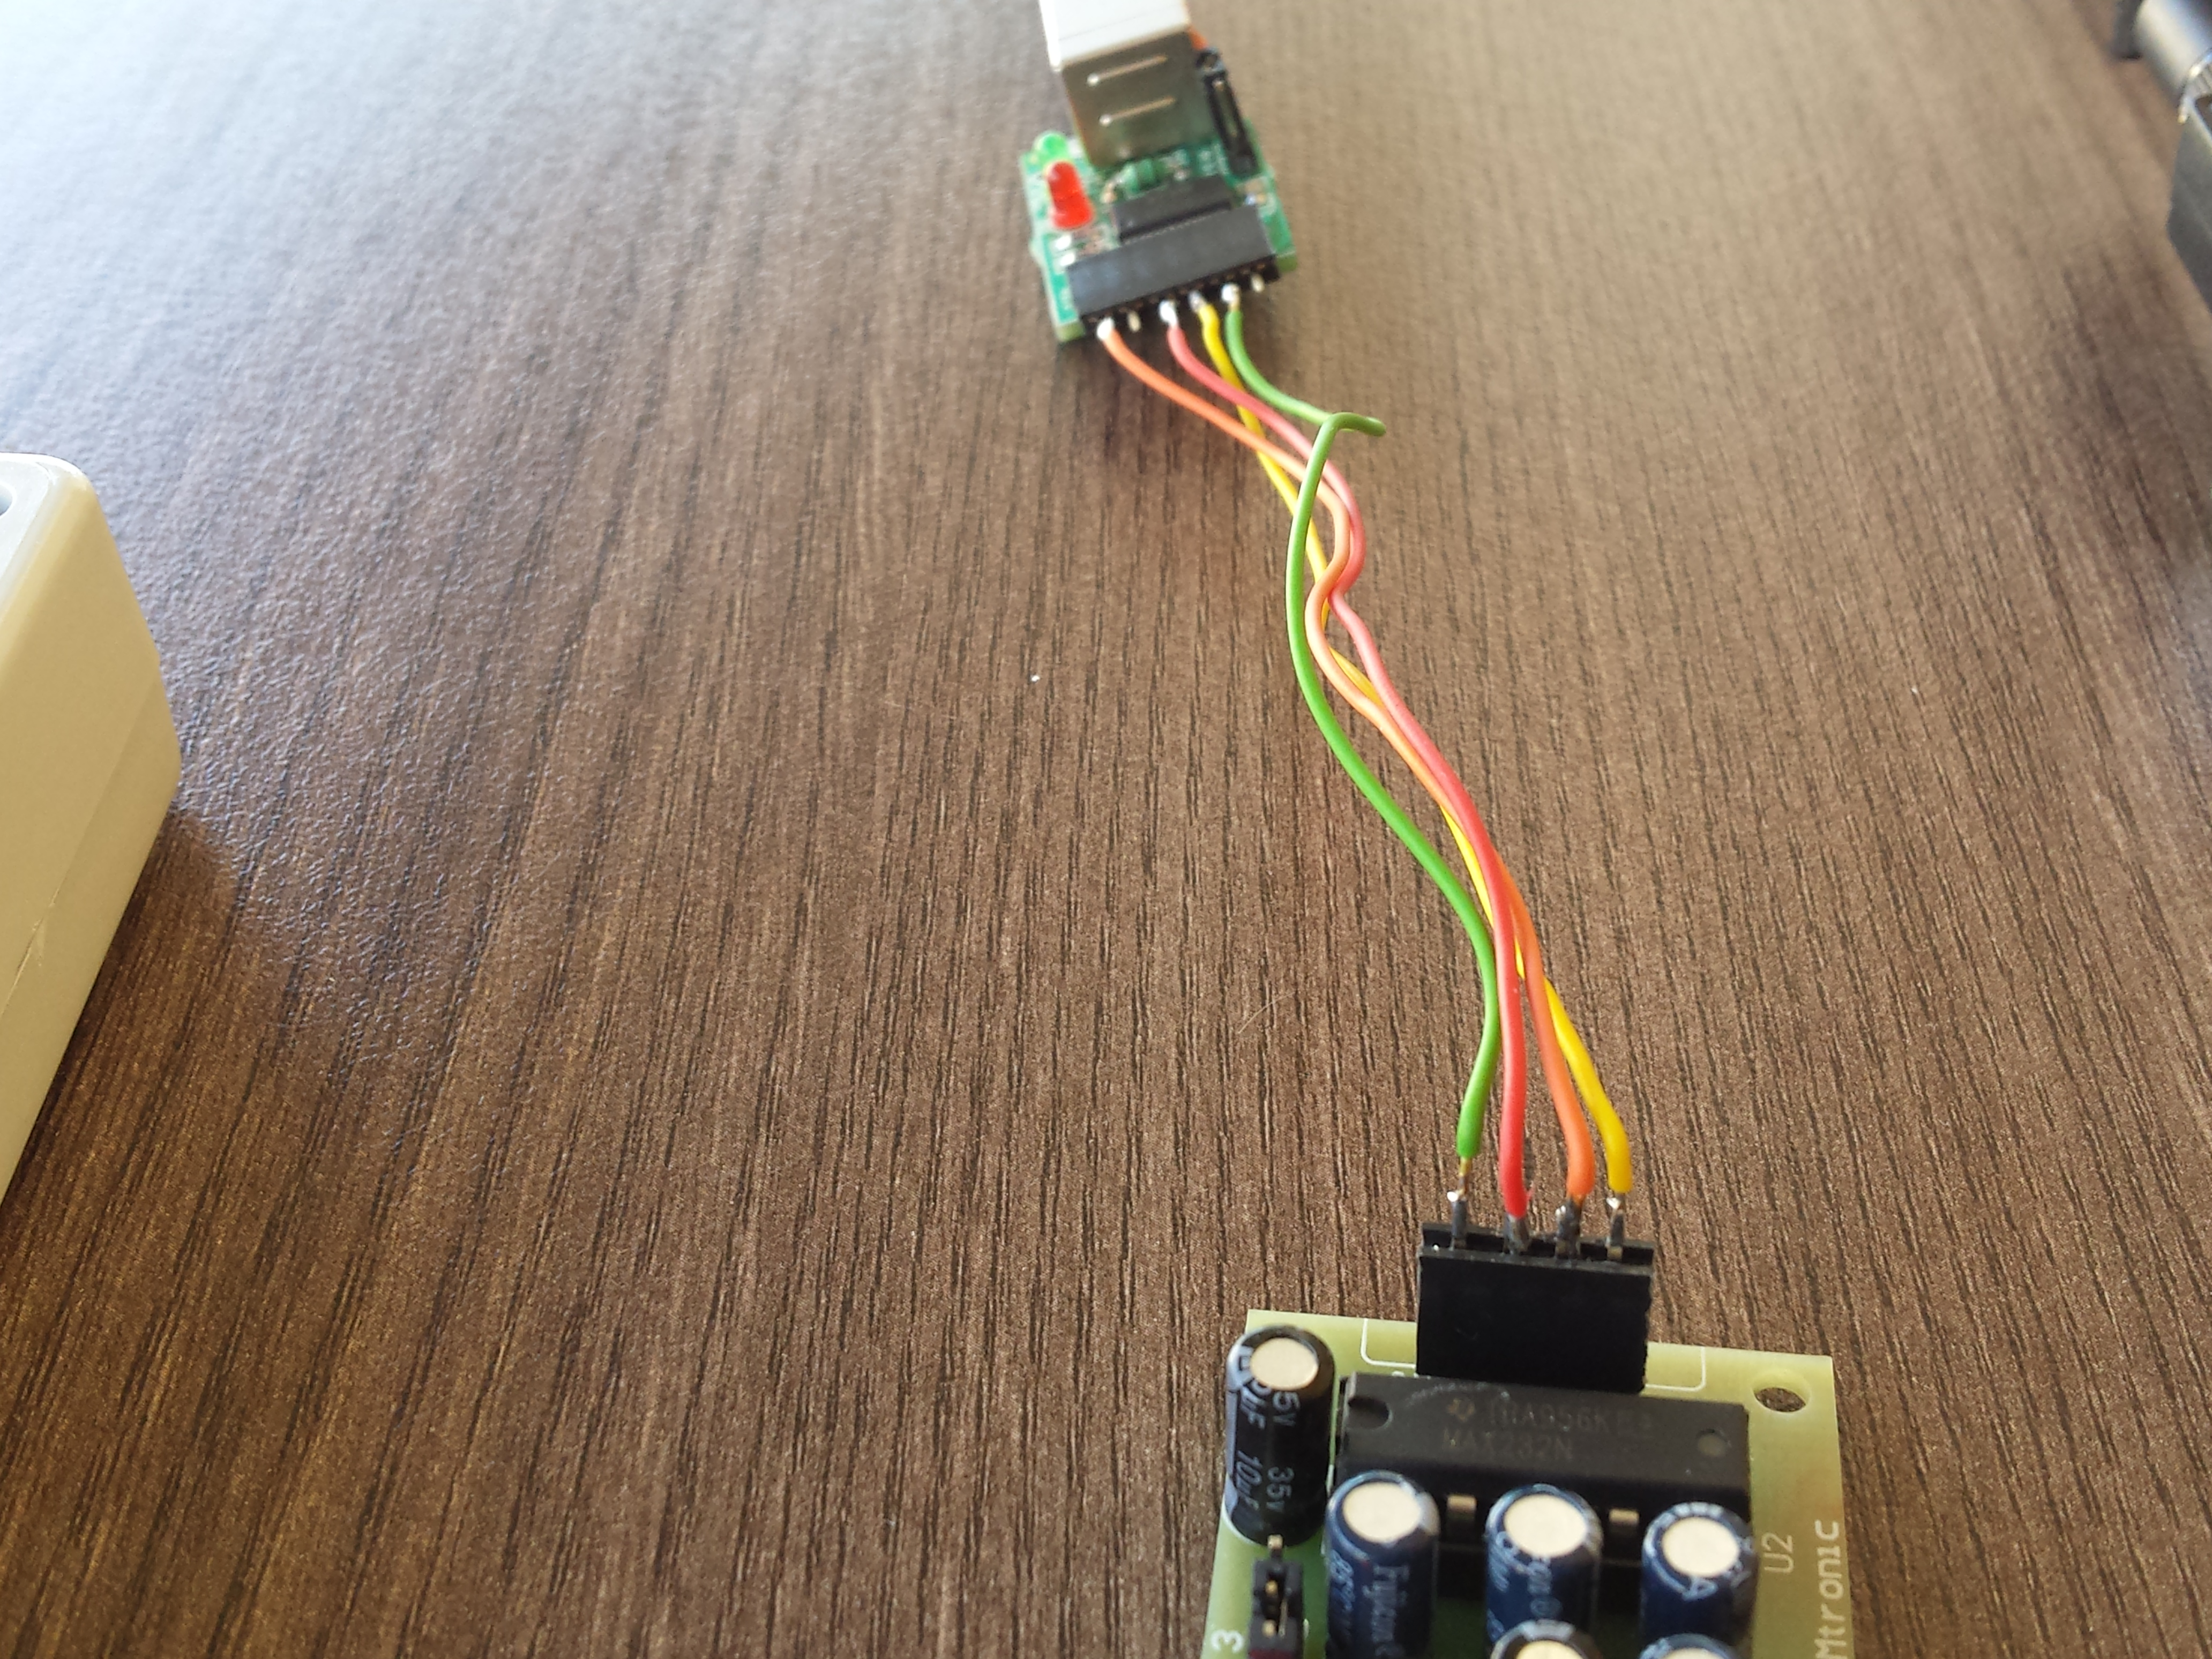 Raspberry Pi Rs232 8 Relay Board Wiring Sets Baud Rate Of The Usb